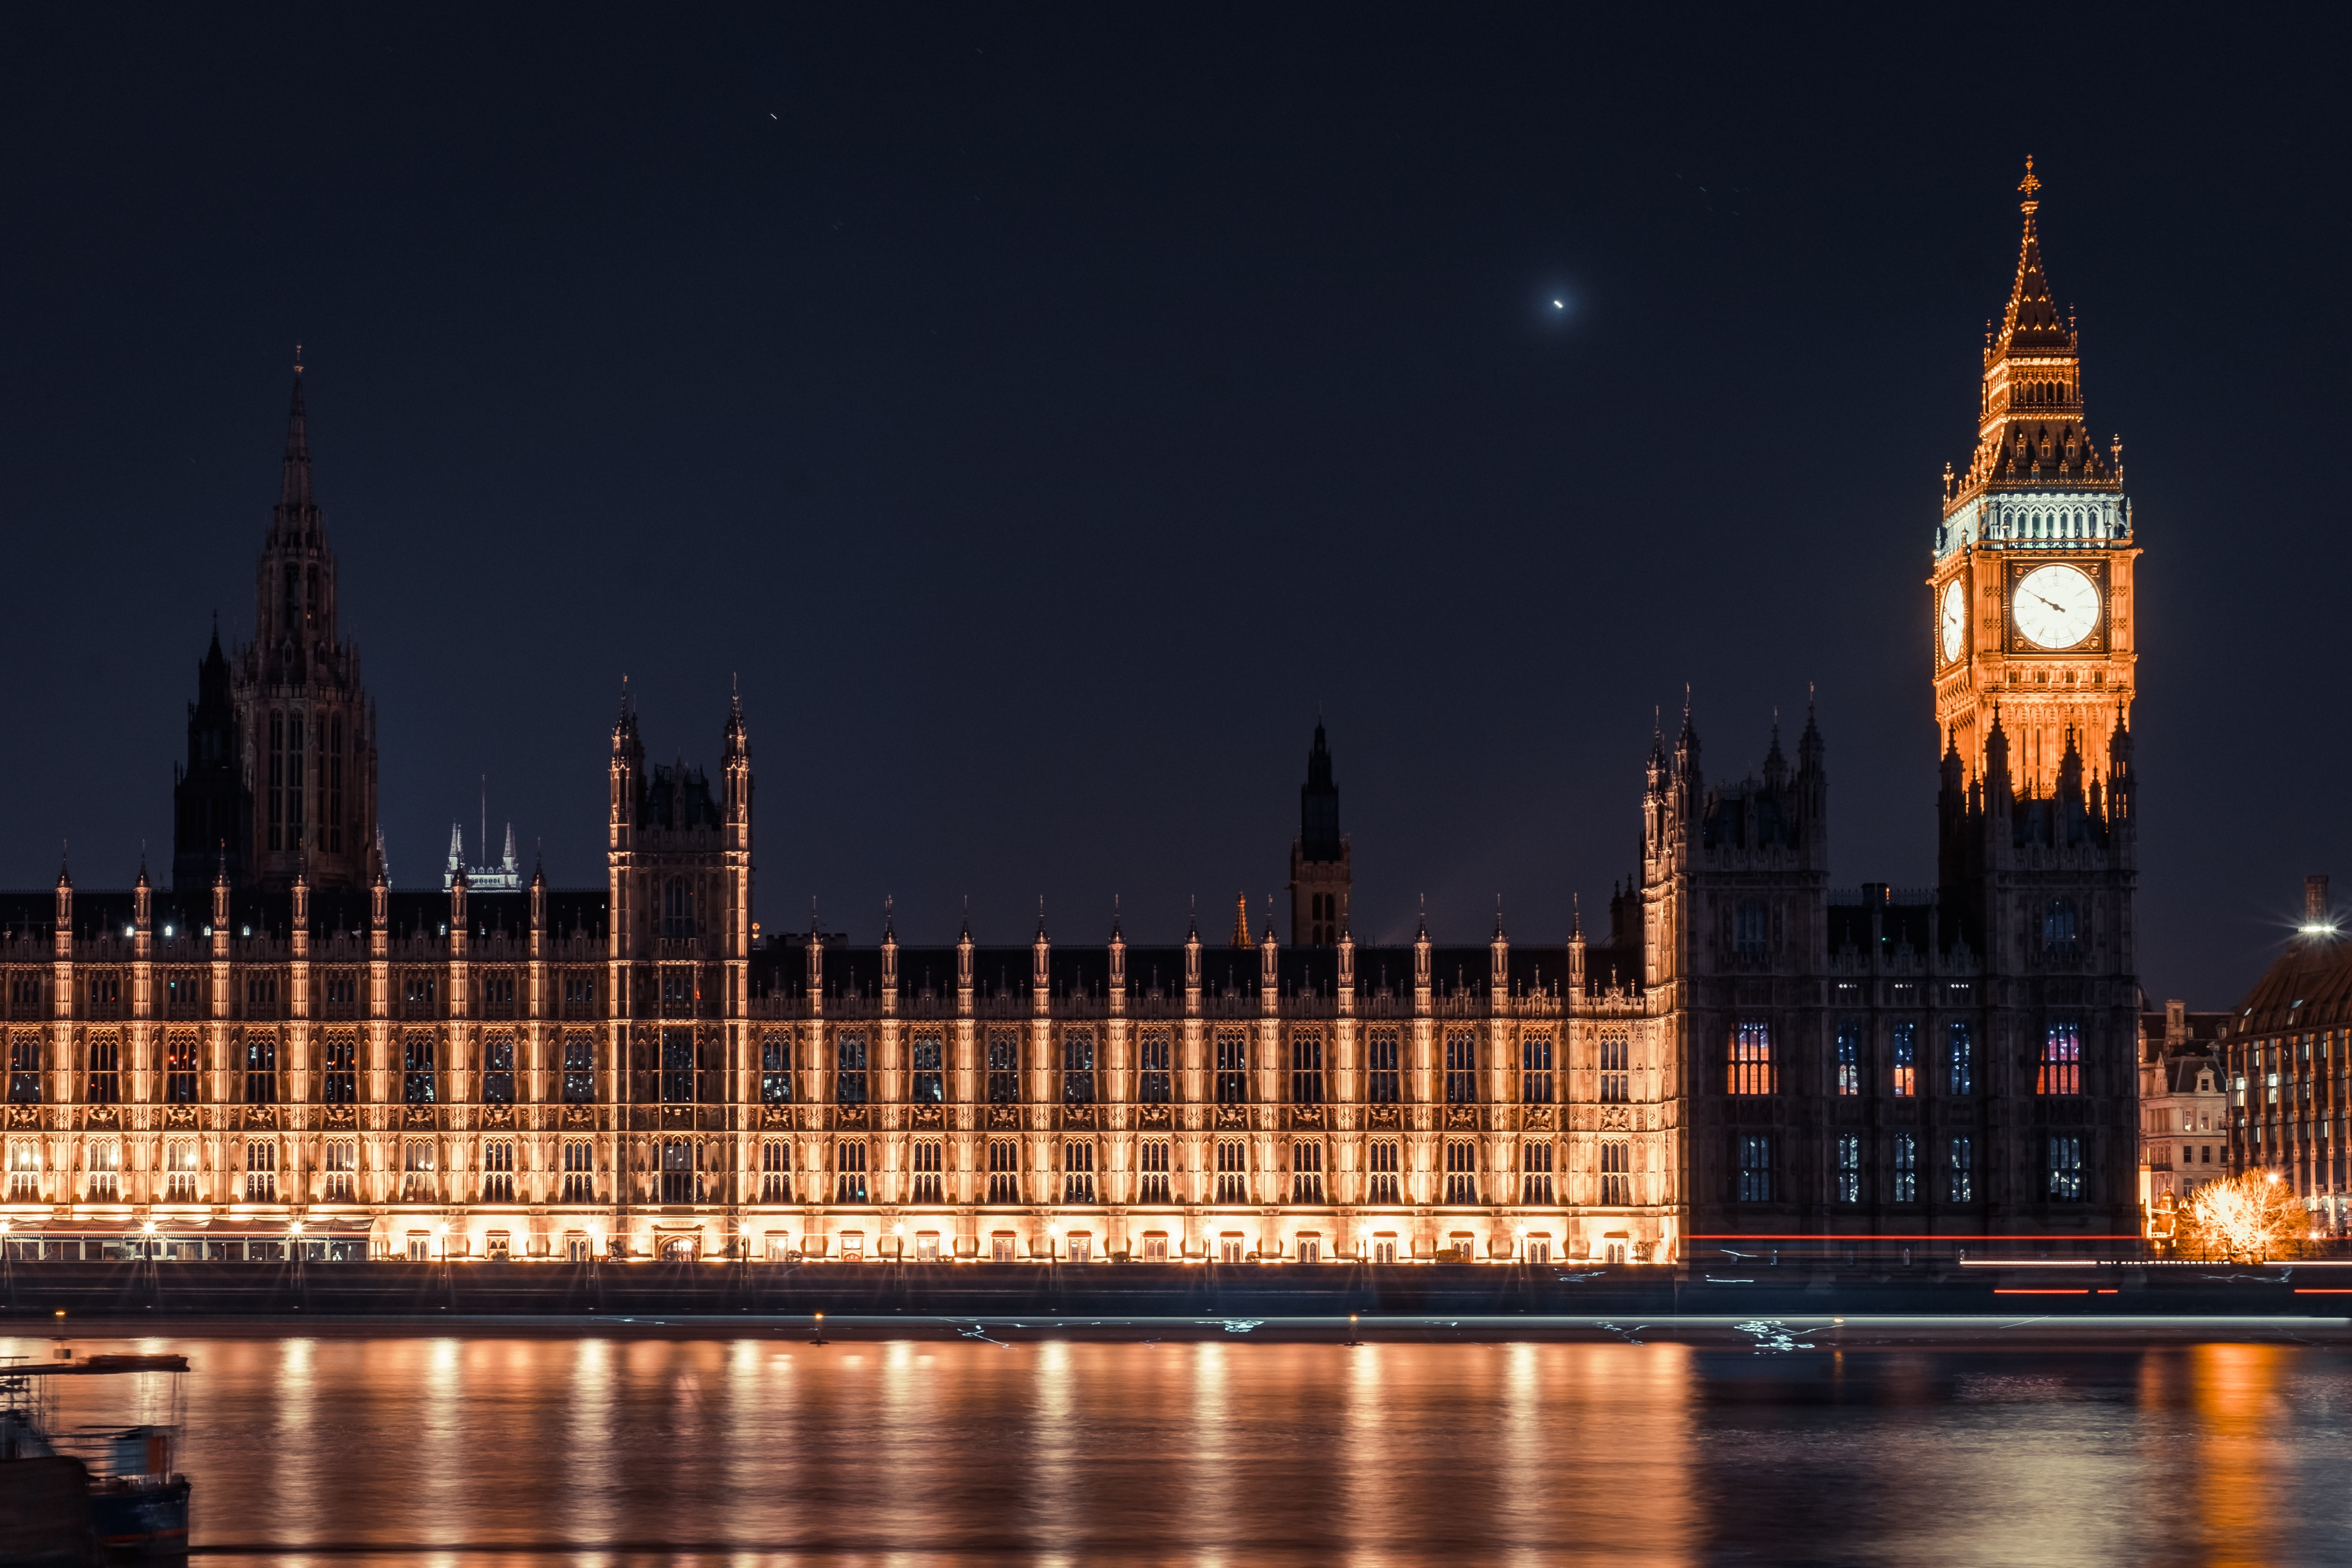 The Houses of Parliament and Big Ben in London lit up on an evening